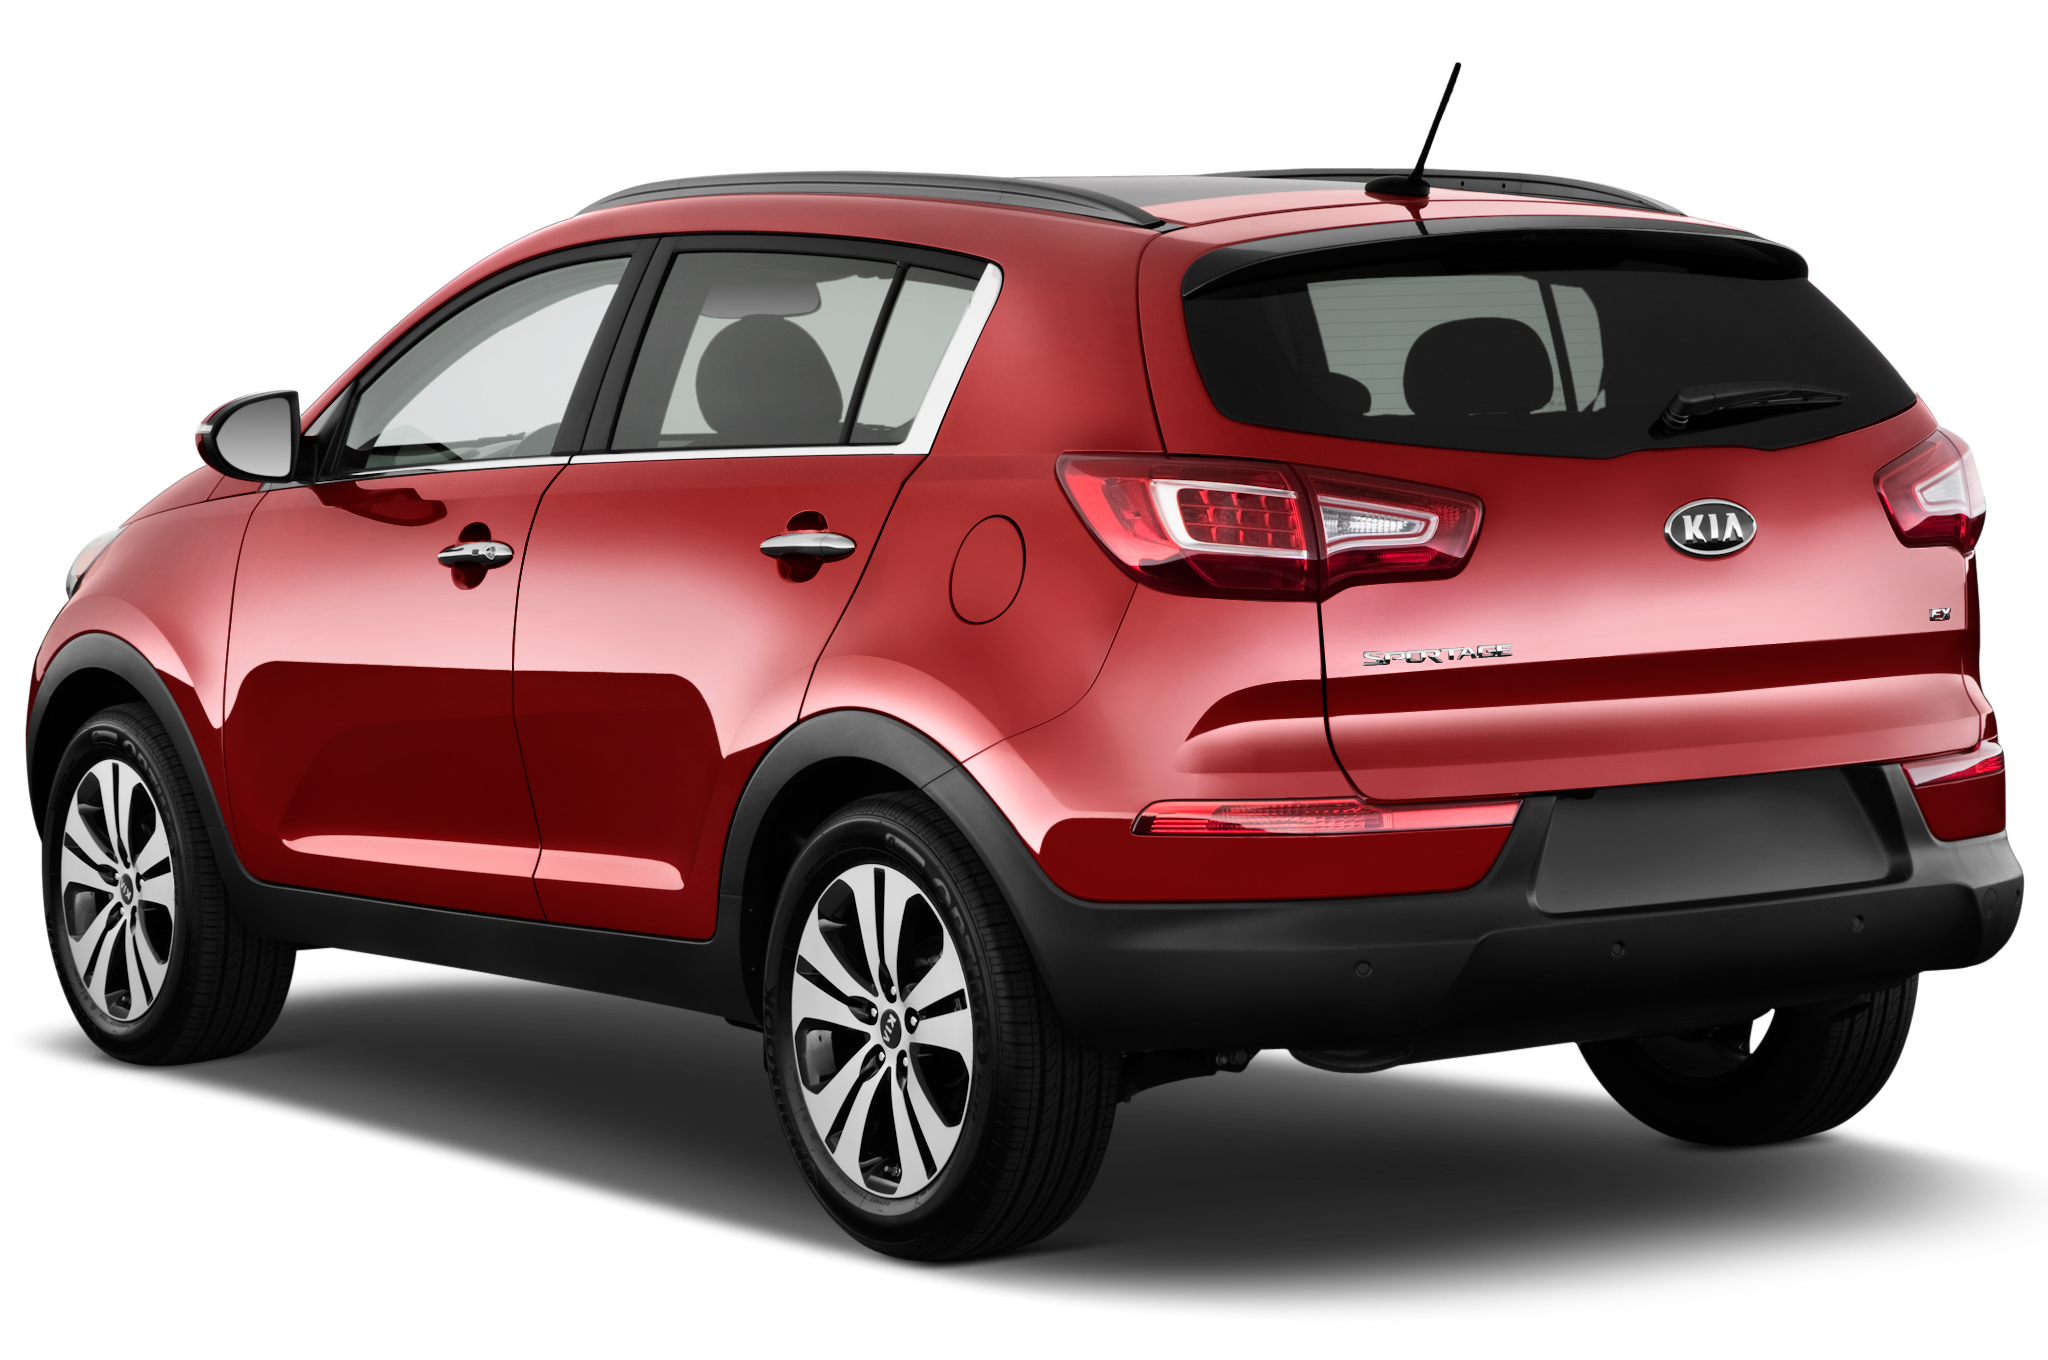 2014 kia sportage pricing rises 300 to 22 450. Black Bedroom Furniture Sets. Home Design Ideas